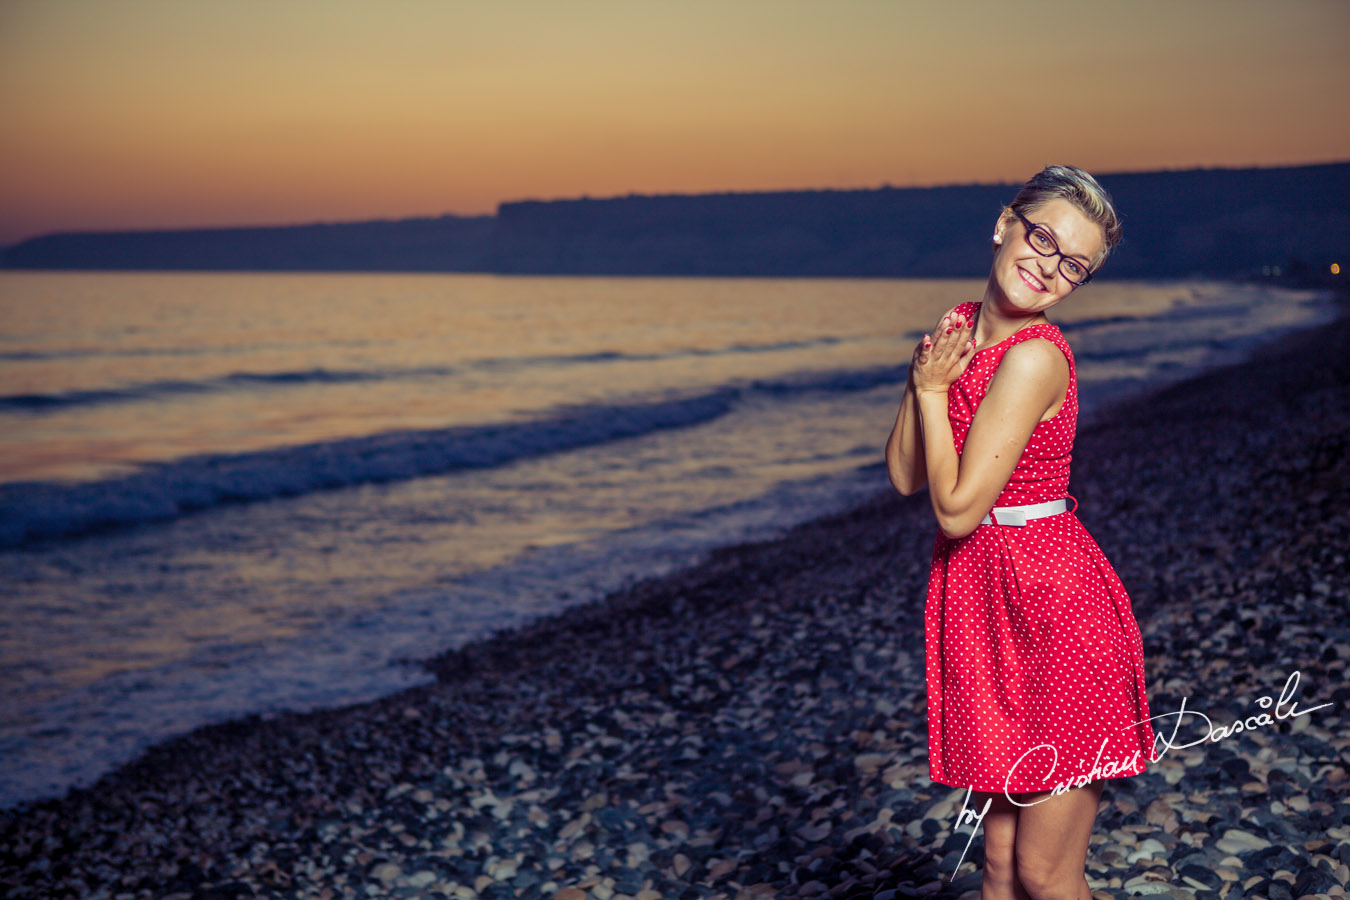 Beach photo shoot in Cyprus - Maria, Moods. Cyprus Photographer: Cristian Dascalu